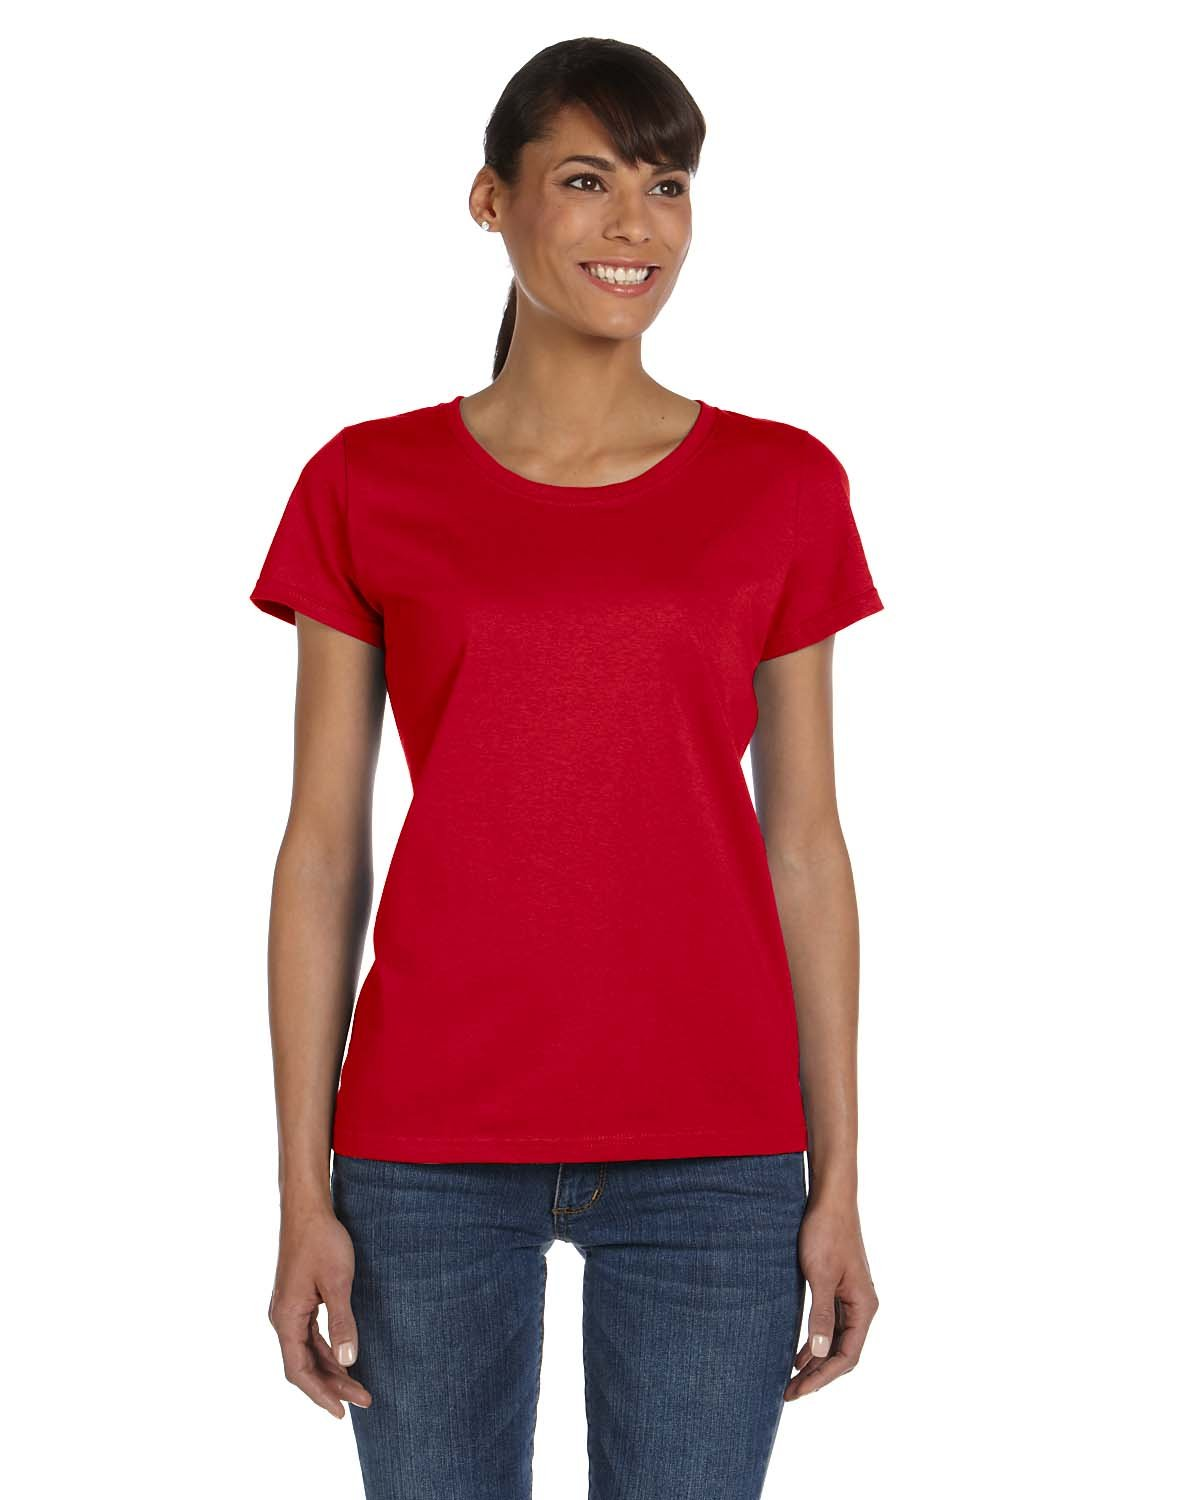 Fruit of the Loom Ladies' HD Cotton™ T-Shirt TRUE RED